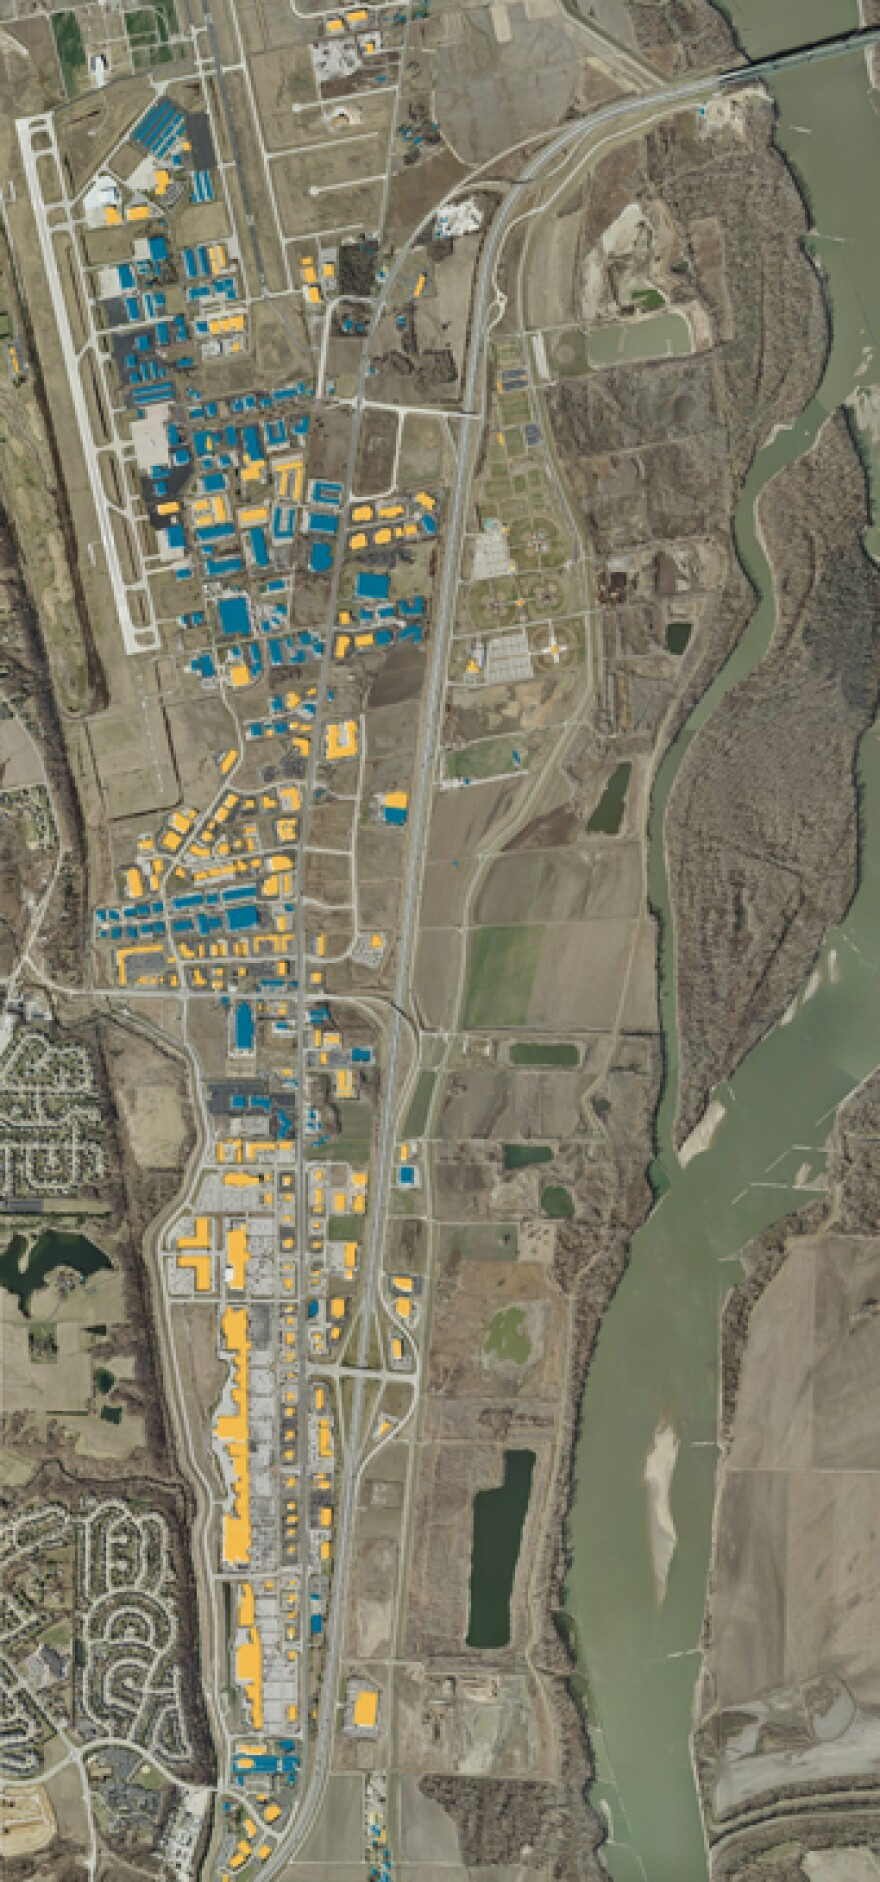 Development in Chesterfield Valley since the flood: Blue structures existed before the flood; yellow structures were built after the flood.